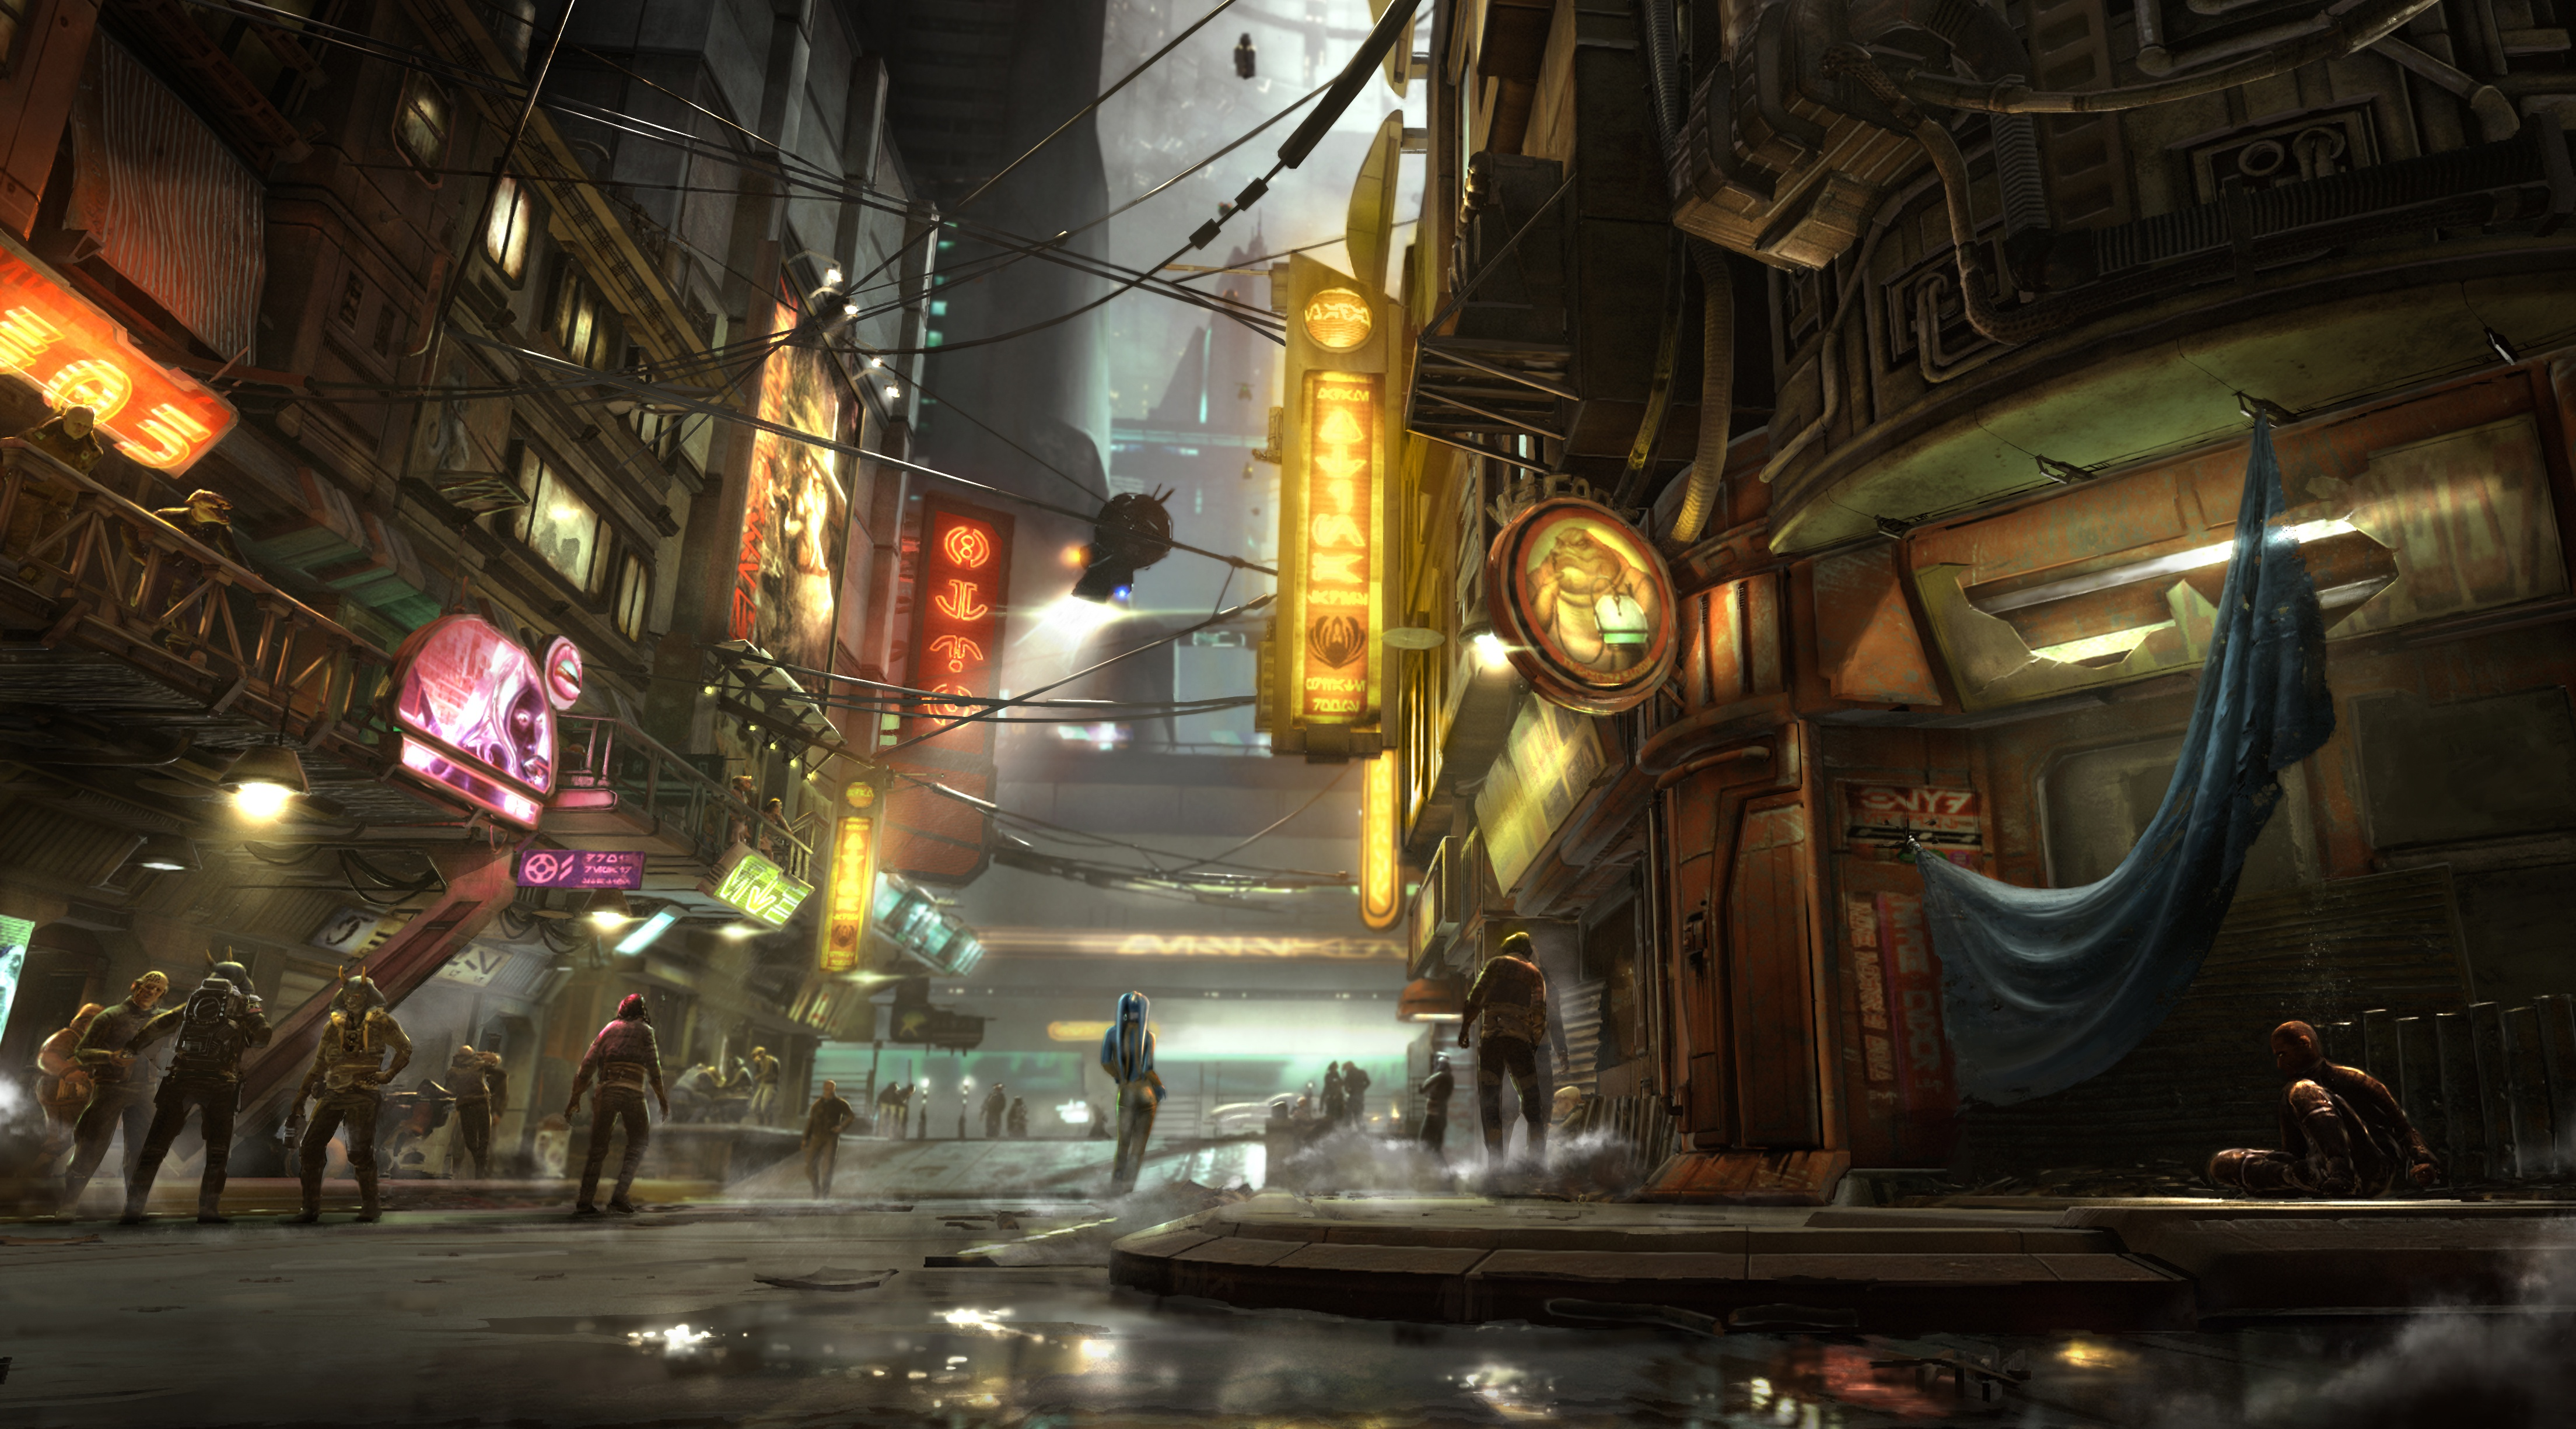 Star Wars 1313 Concept Art 4k Hd Artist 4k Wallpapers Images Backgrounds Photos And Pictures